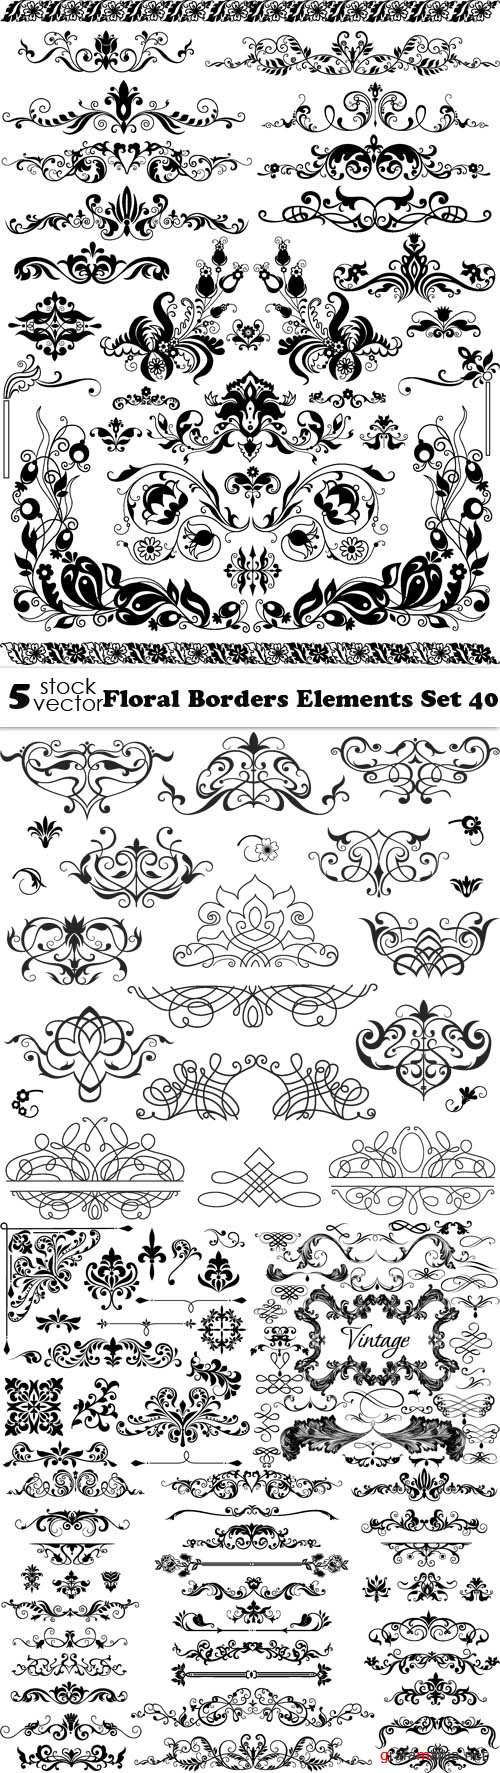 Vectors - Floral Borders Elements Set 40